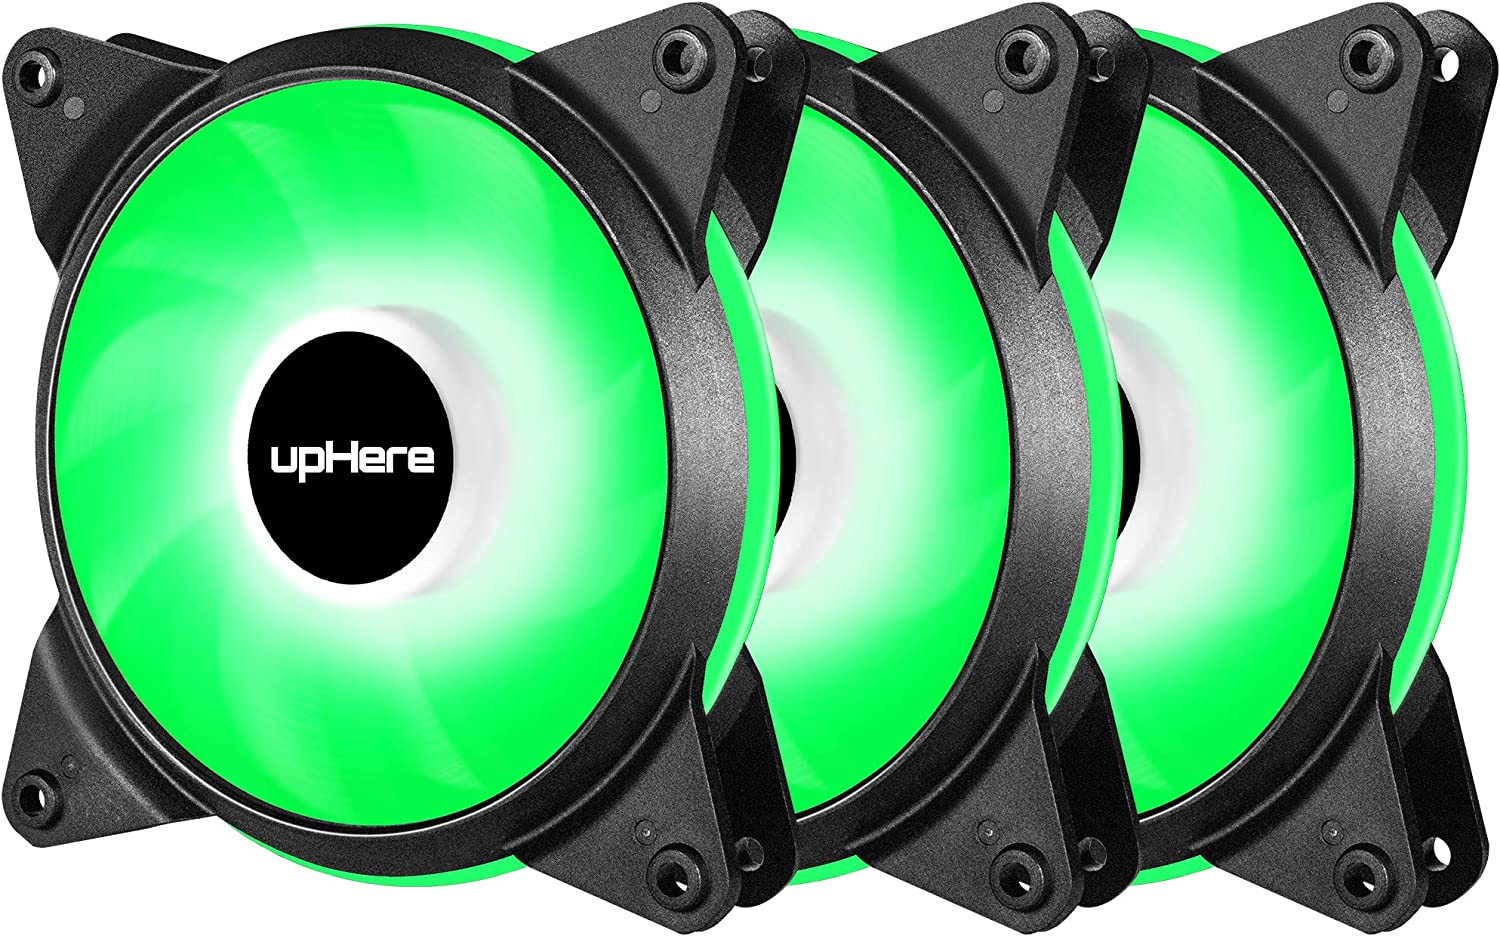 upHere 3-Pack High Airflow Quiet Edition Green LED Case Fan pwm 4in for PC Cases T4GN4-3